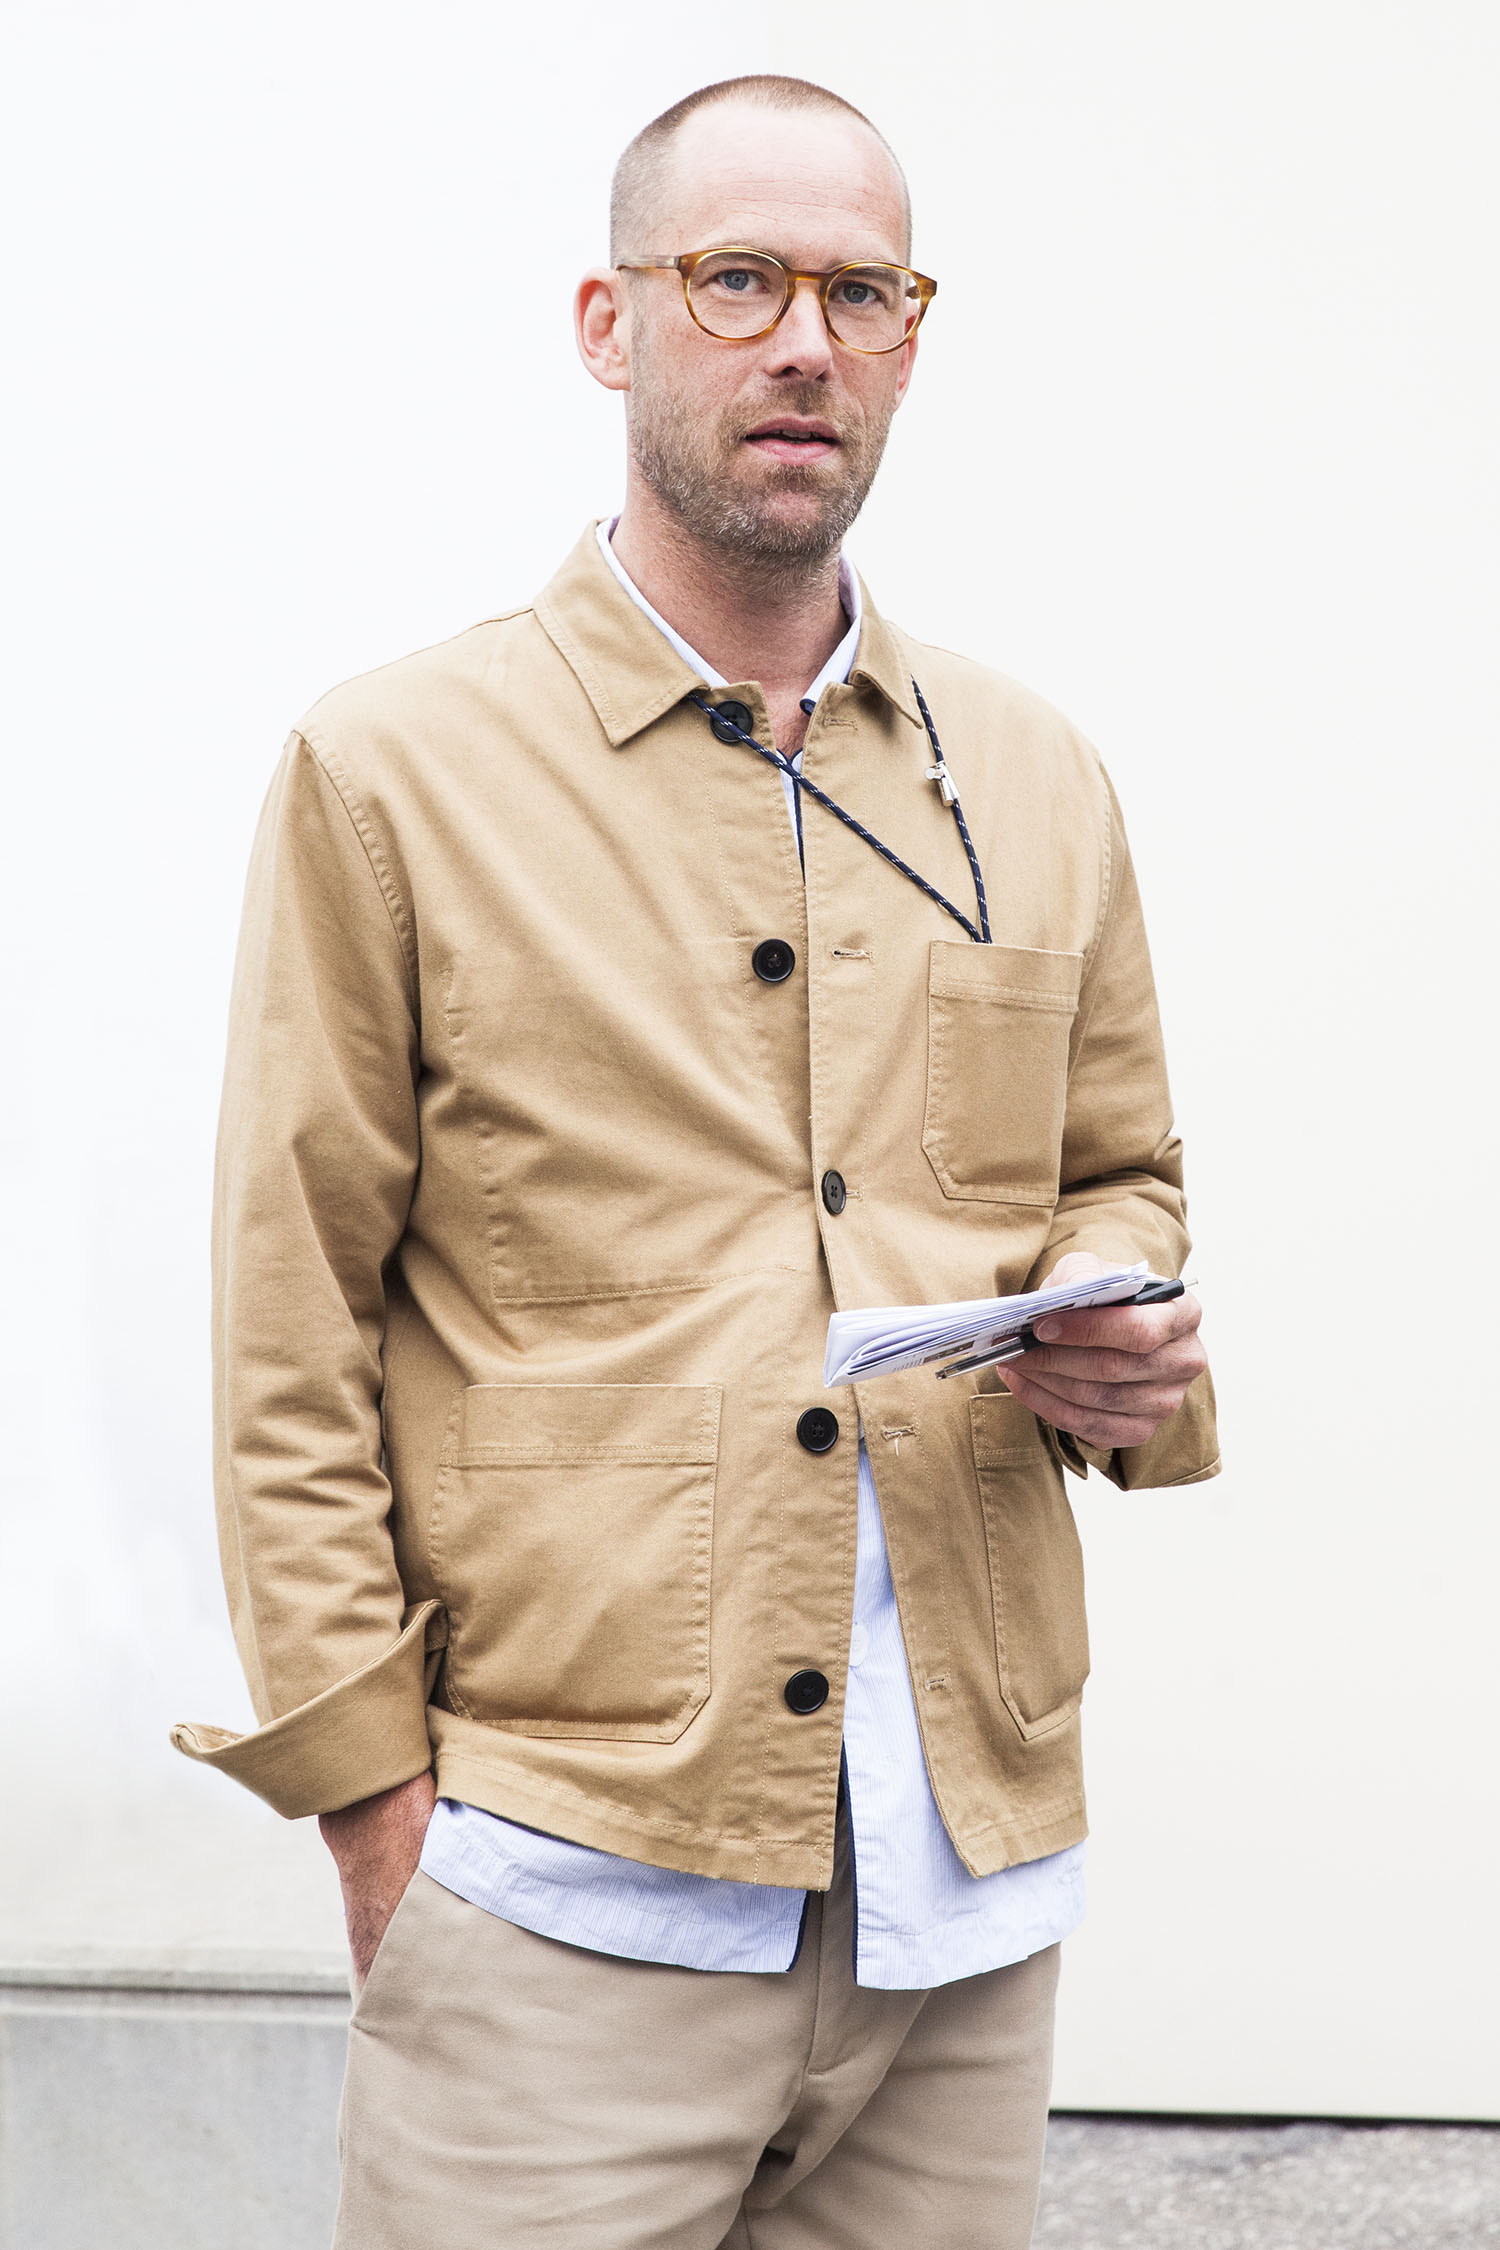 Frederik Lentz Andersen, Fashion Director